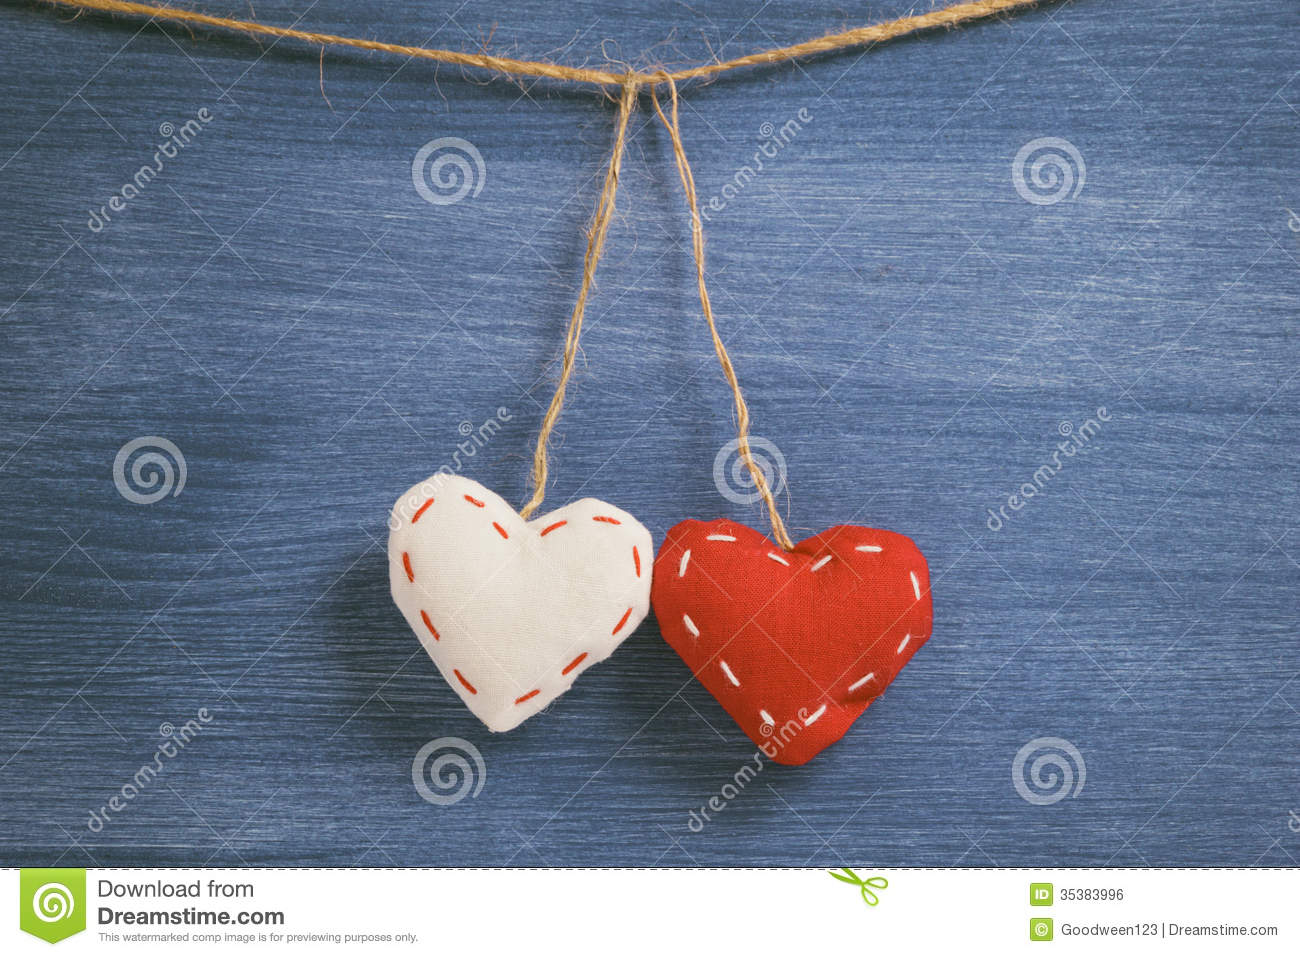 Decorative Wall Hanging Hearts : Decorative hearts hanging on the rope against blue wood